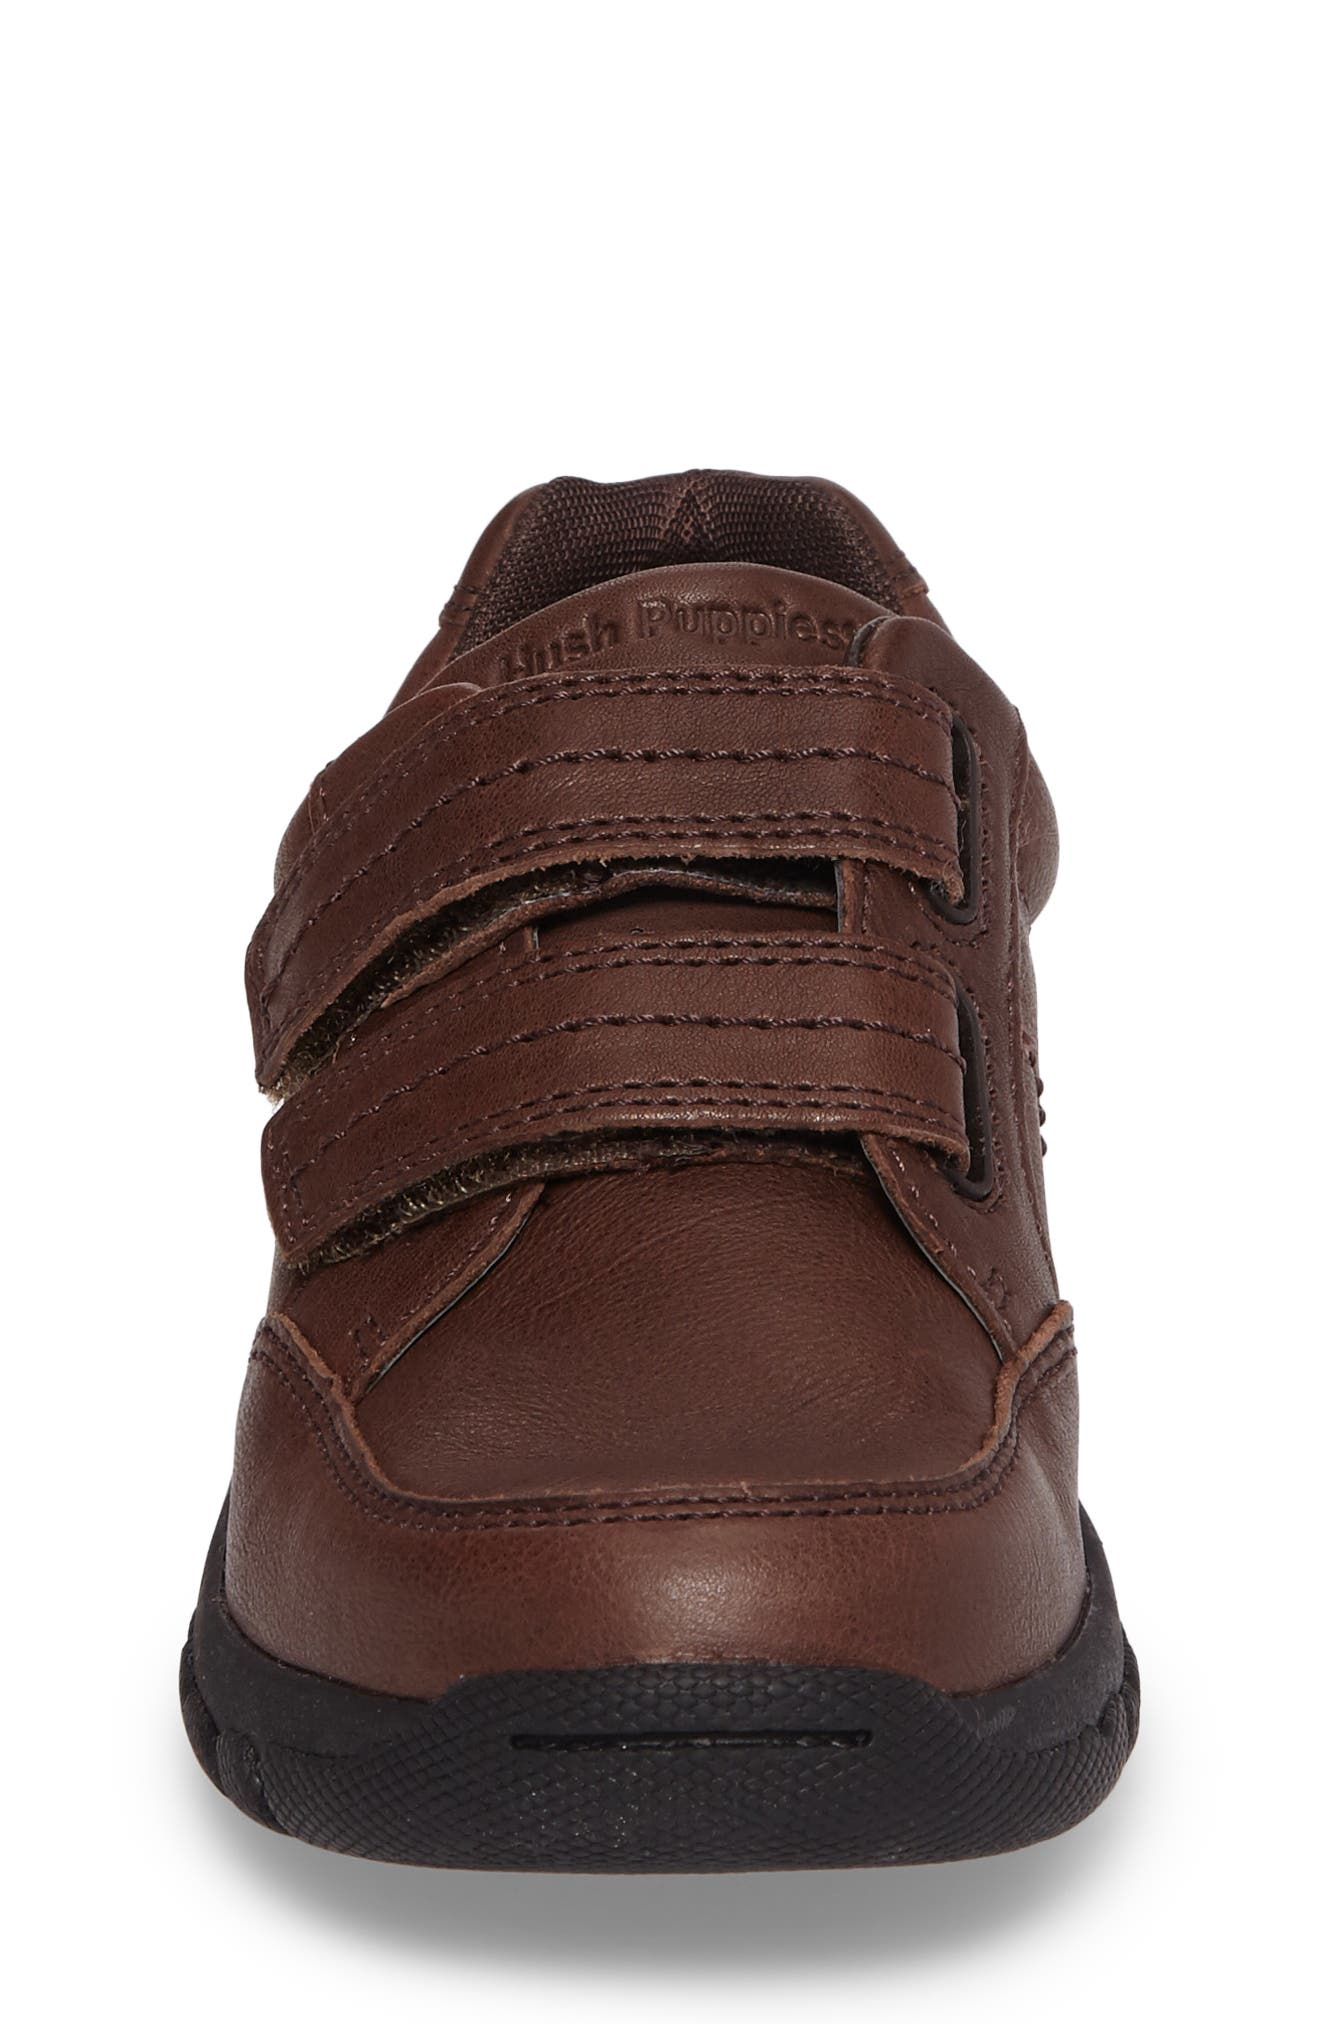 Jace Dress Sneaker,                             Alternate thumbnail 4, color,                             Brown Leather